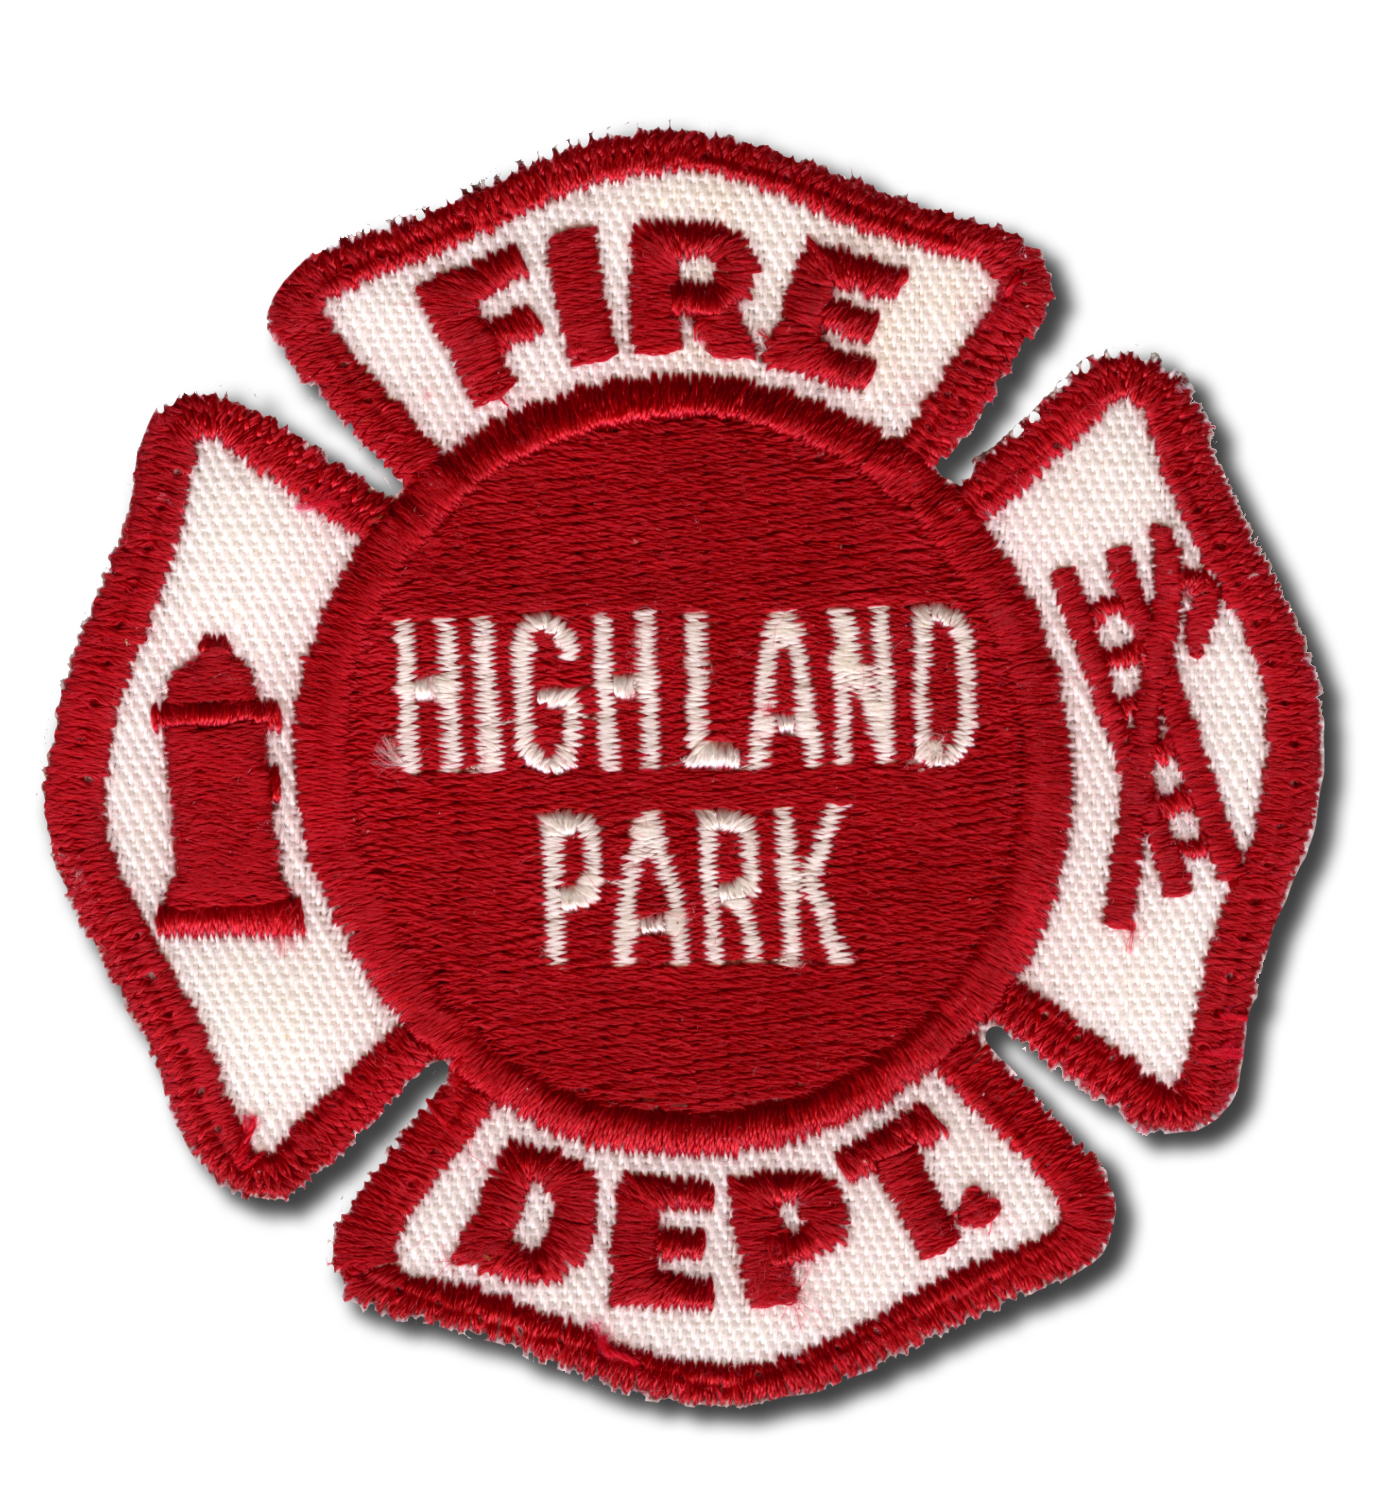 Highland Park Fire Department patch